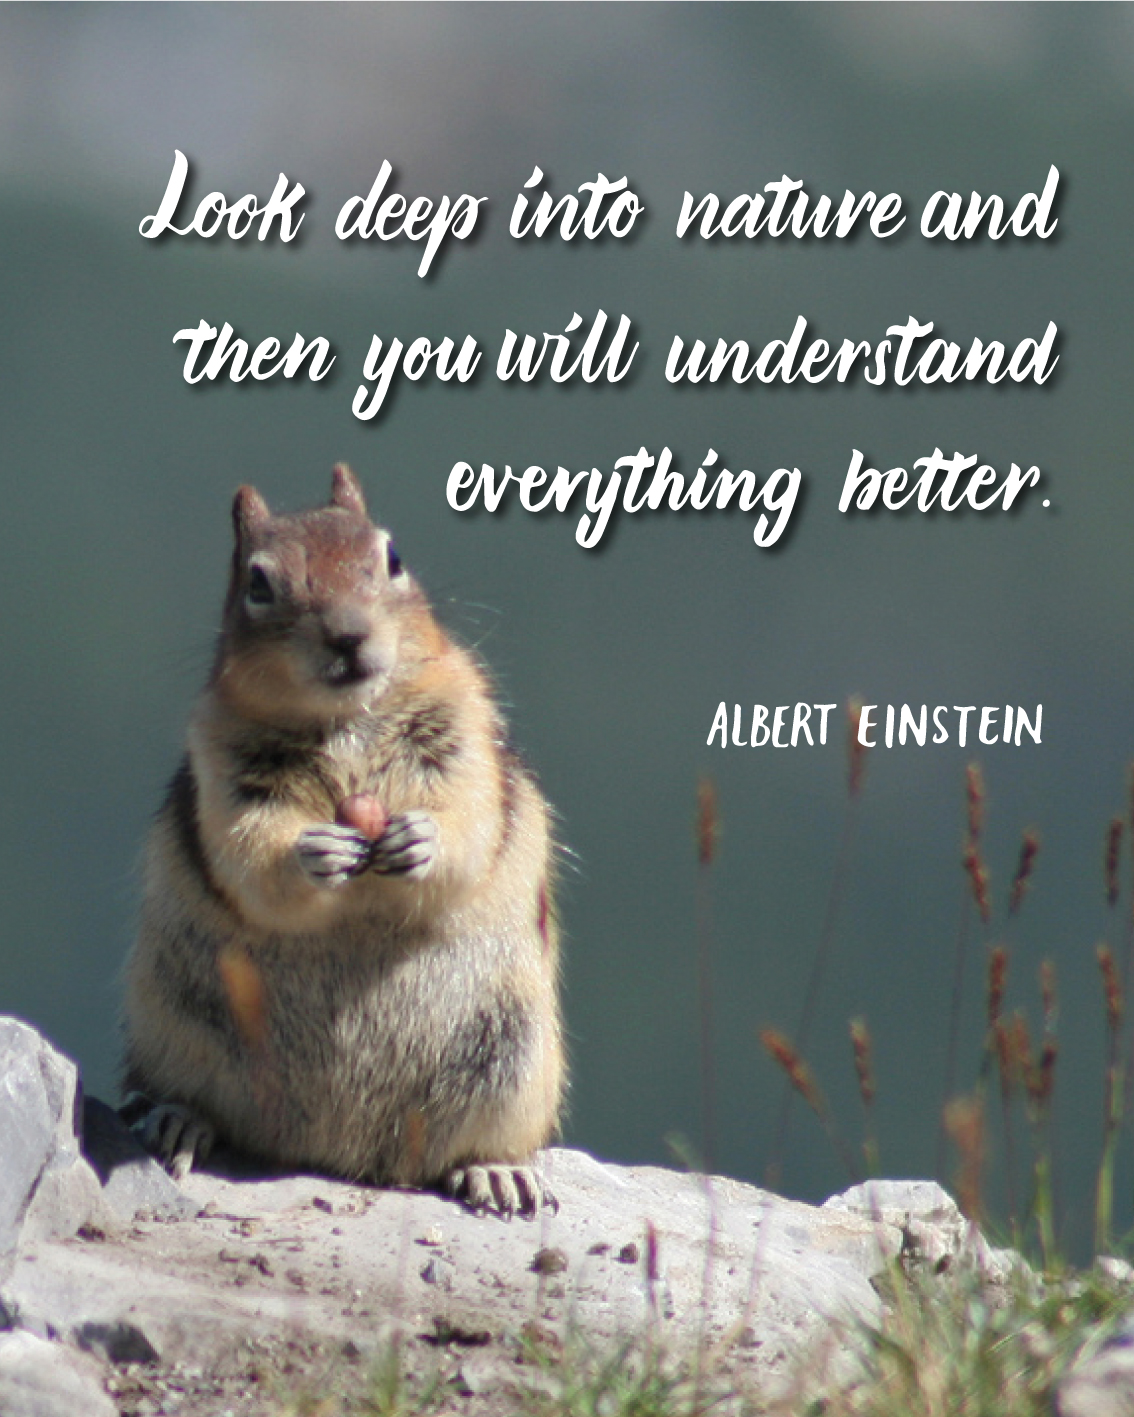 DONE-look-deep-into-nature,-and-then-you-will-understand-everything-better---albert-einstein.jpg